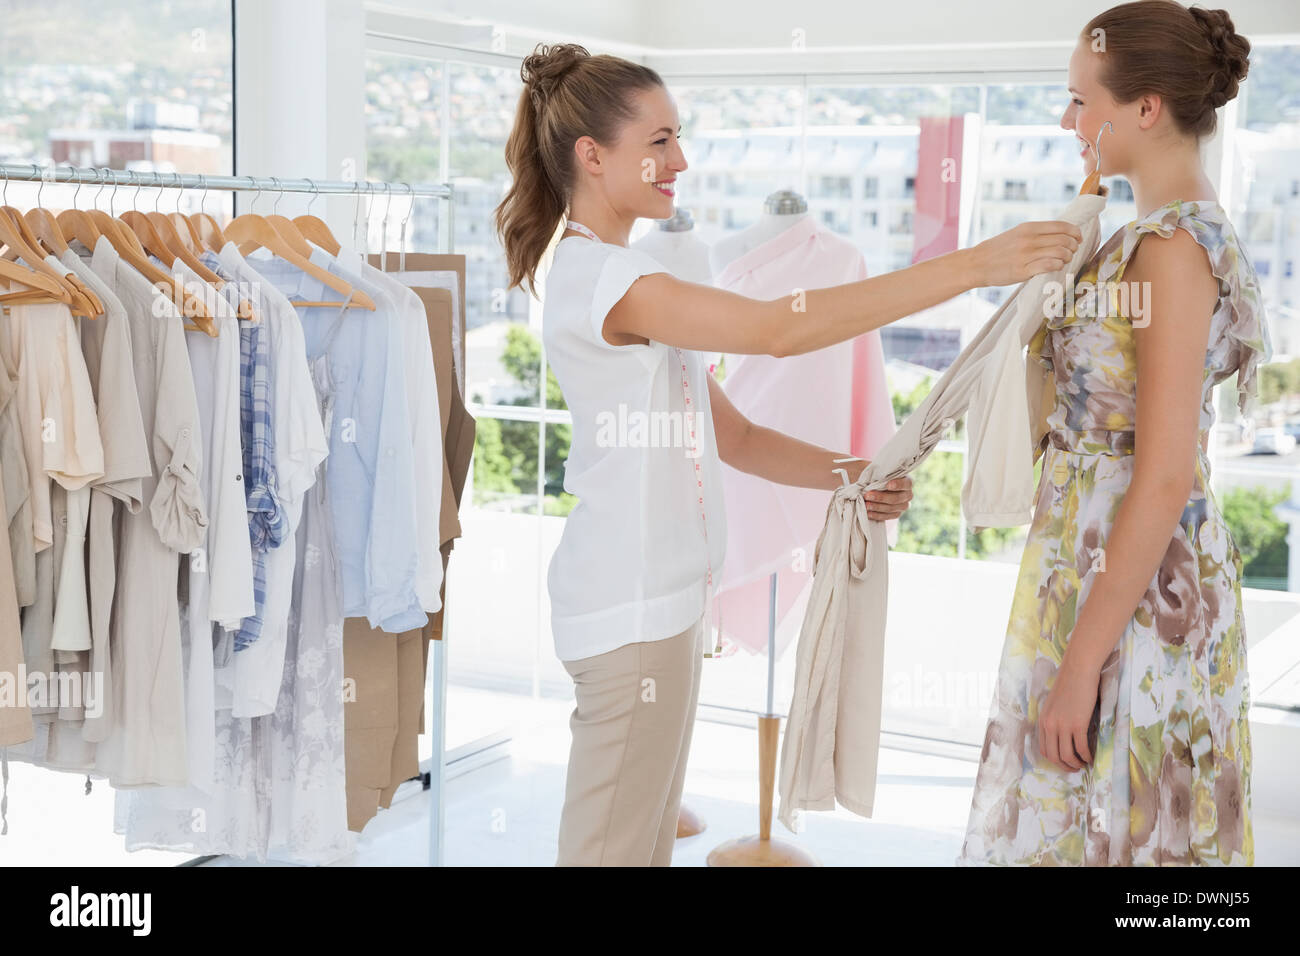 Saleswoman assisting woman with clothes at clothing store - Stock Image